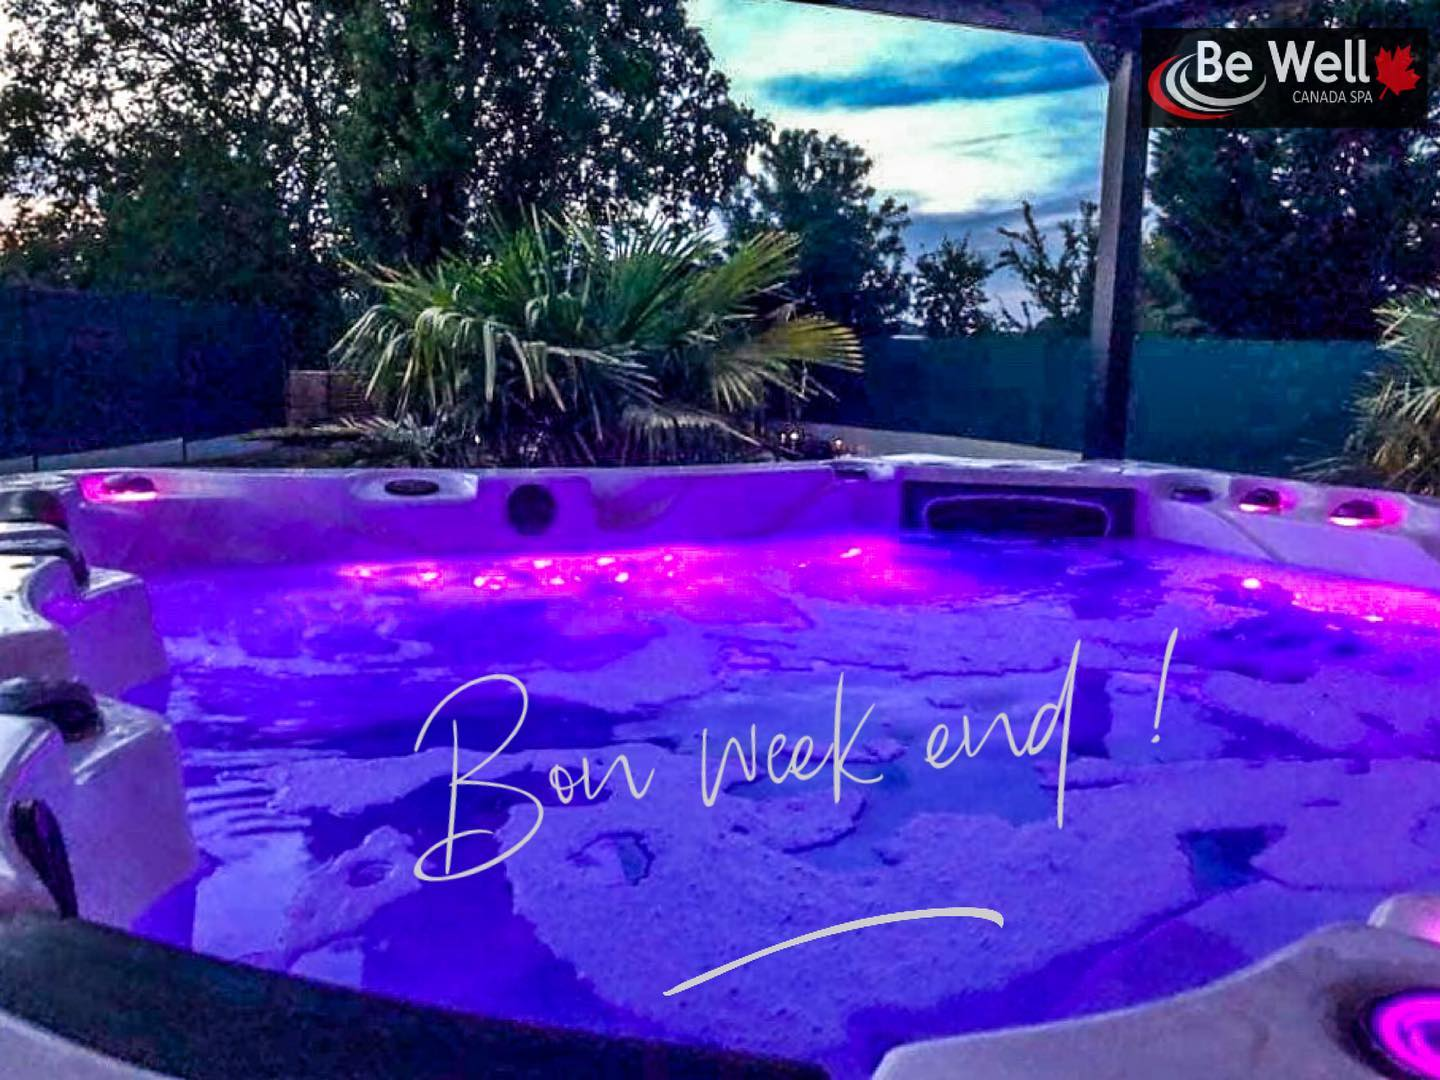 Be well canada Spa